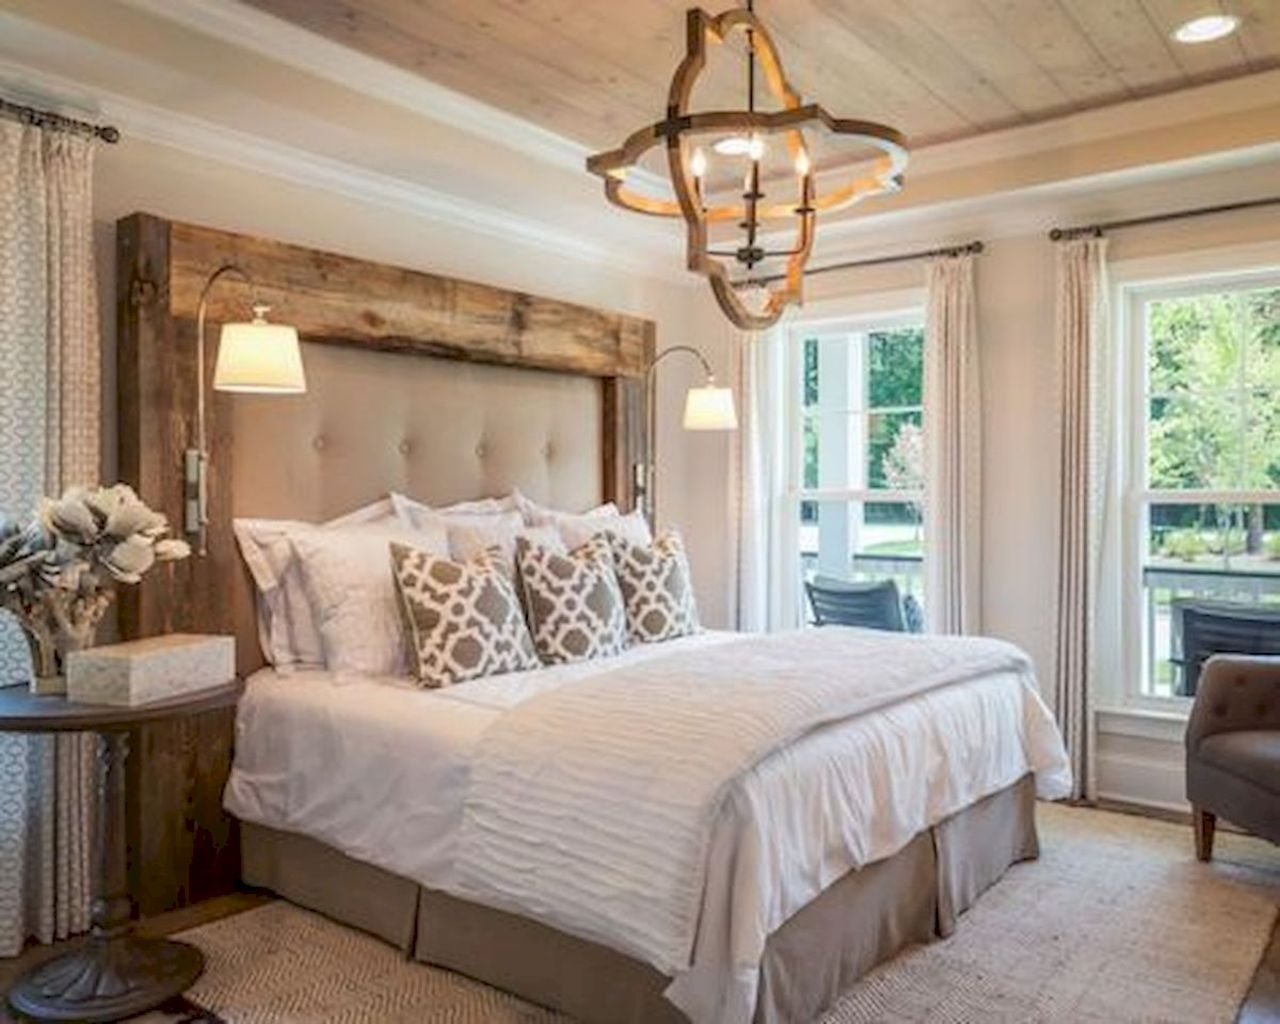 Awesome 75 Cozy Modern Farmhouse Bedroom Decor Ideas Bedroom D Farmhouse Style Master Bedroom Modern Farmhouse Style Bedroom Modern Farmhouse Master Bedroom